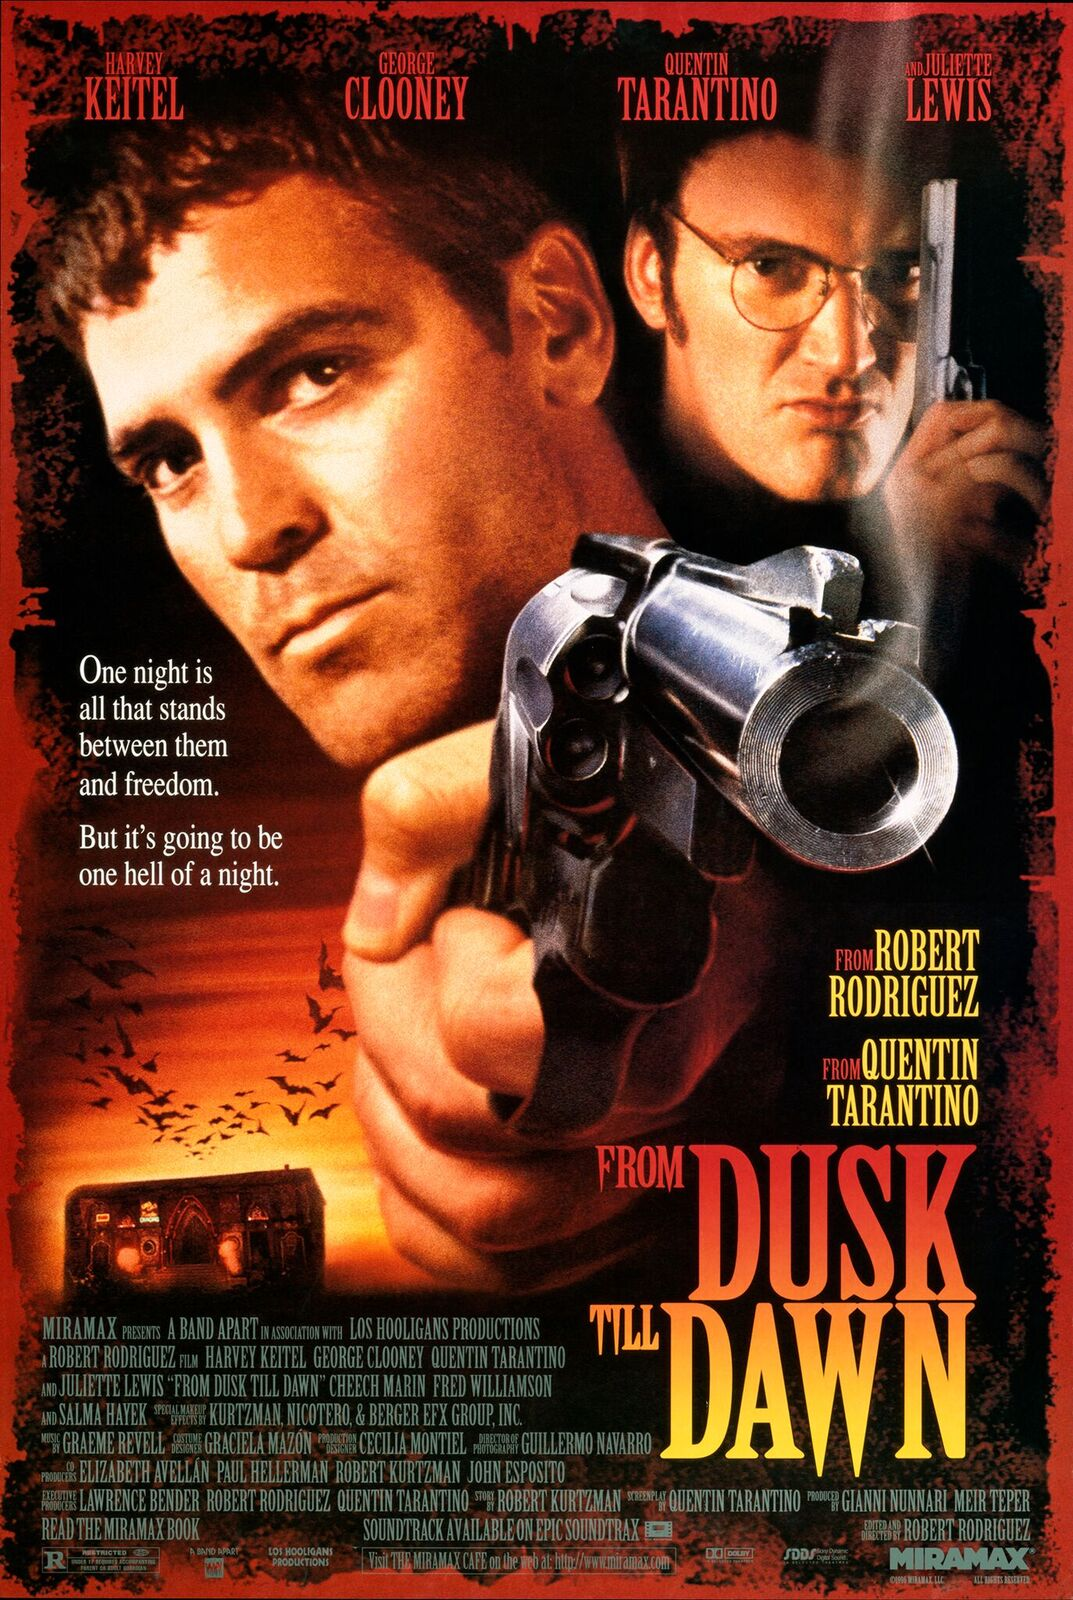 From Dusk Till Dawn Celebrates 20th Anniversary with Theatrical Tickets Giveaway